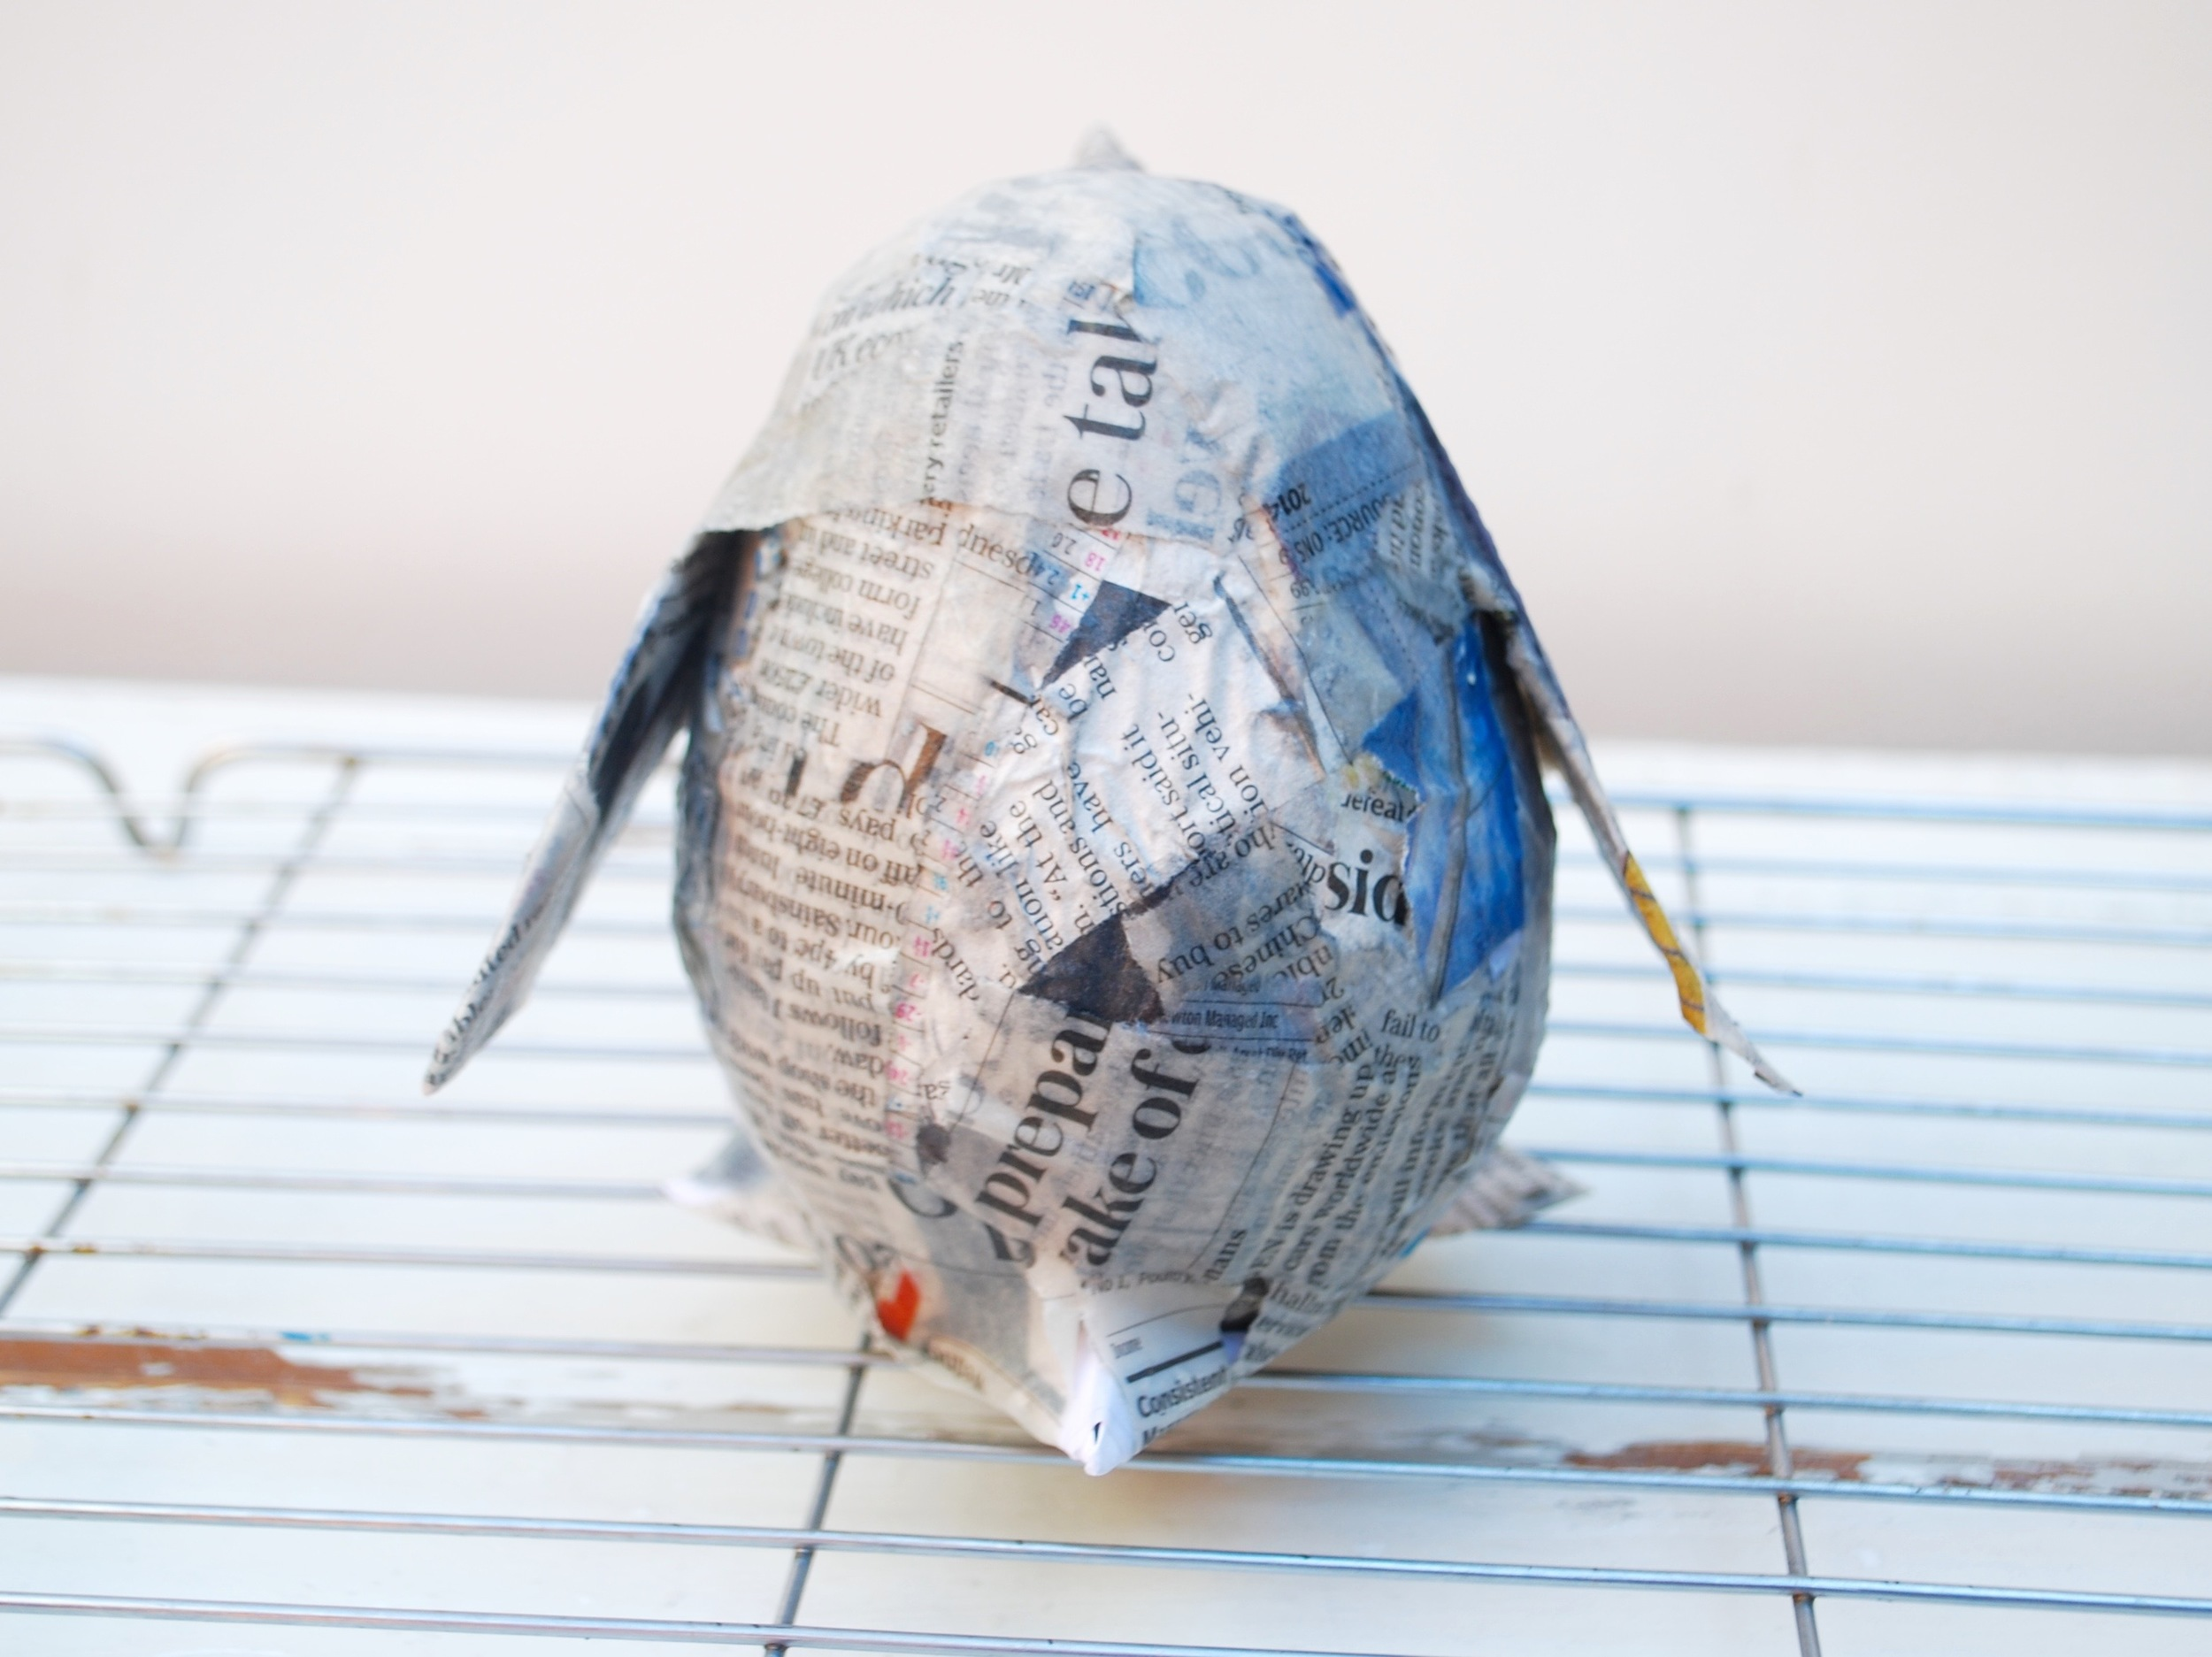 Penguin Paper Pet Tutorial - completely covered in new paper